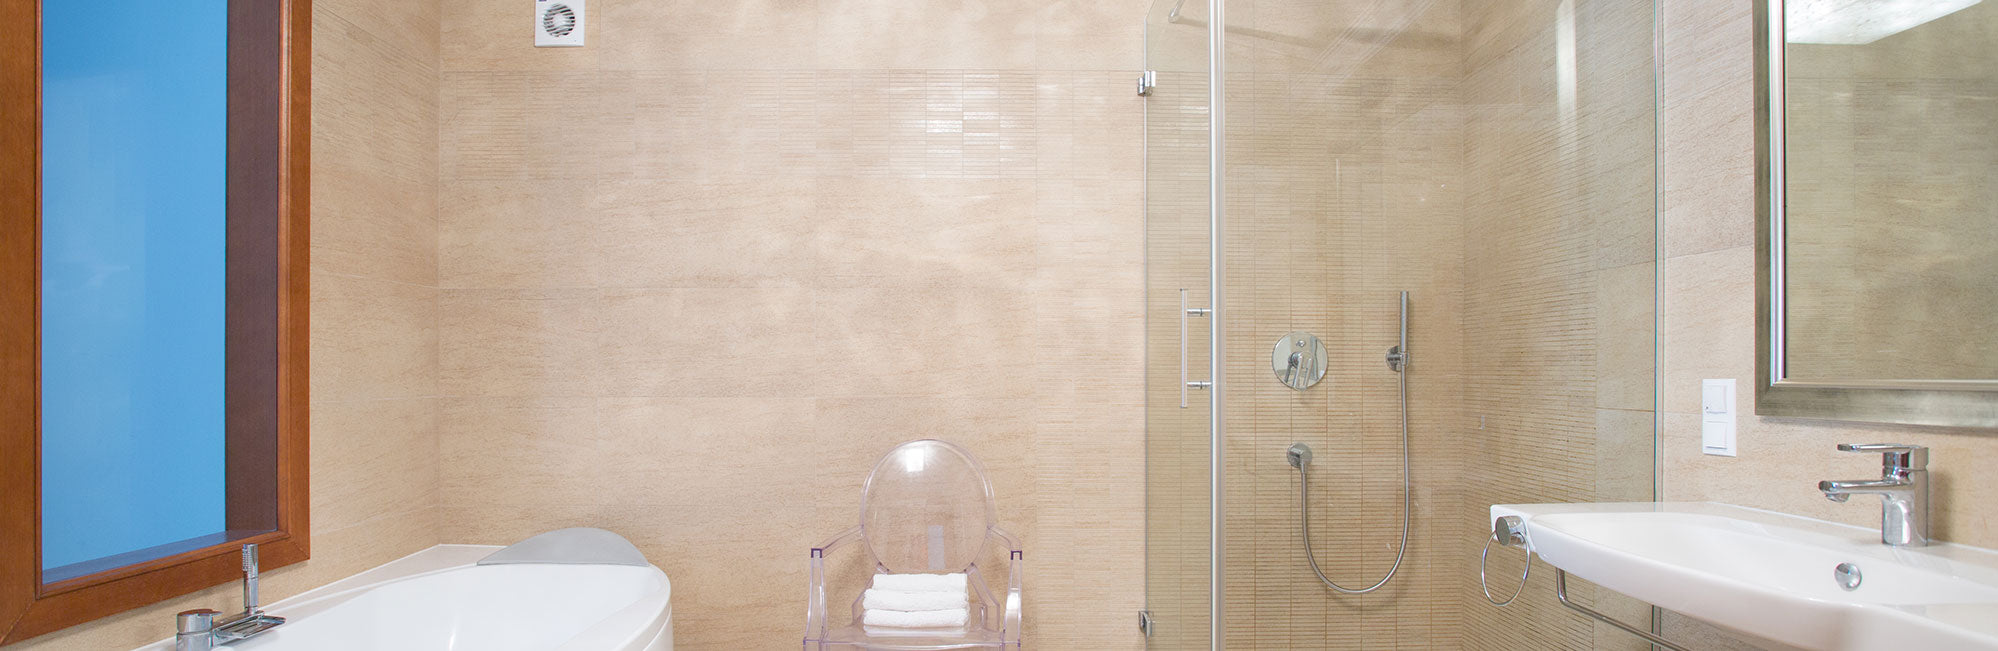 Glass shower enclosure and vanity mirrors